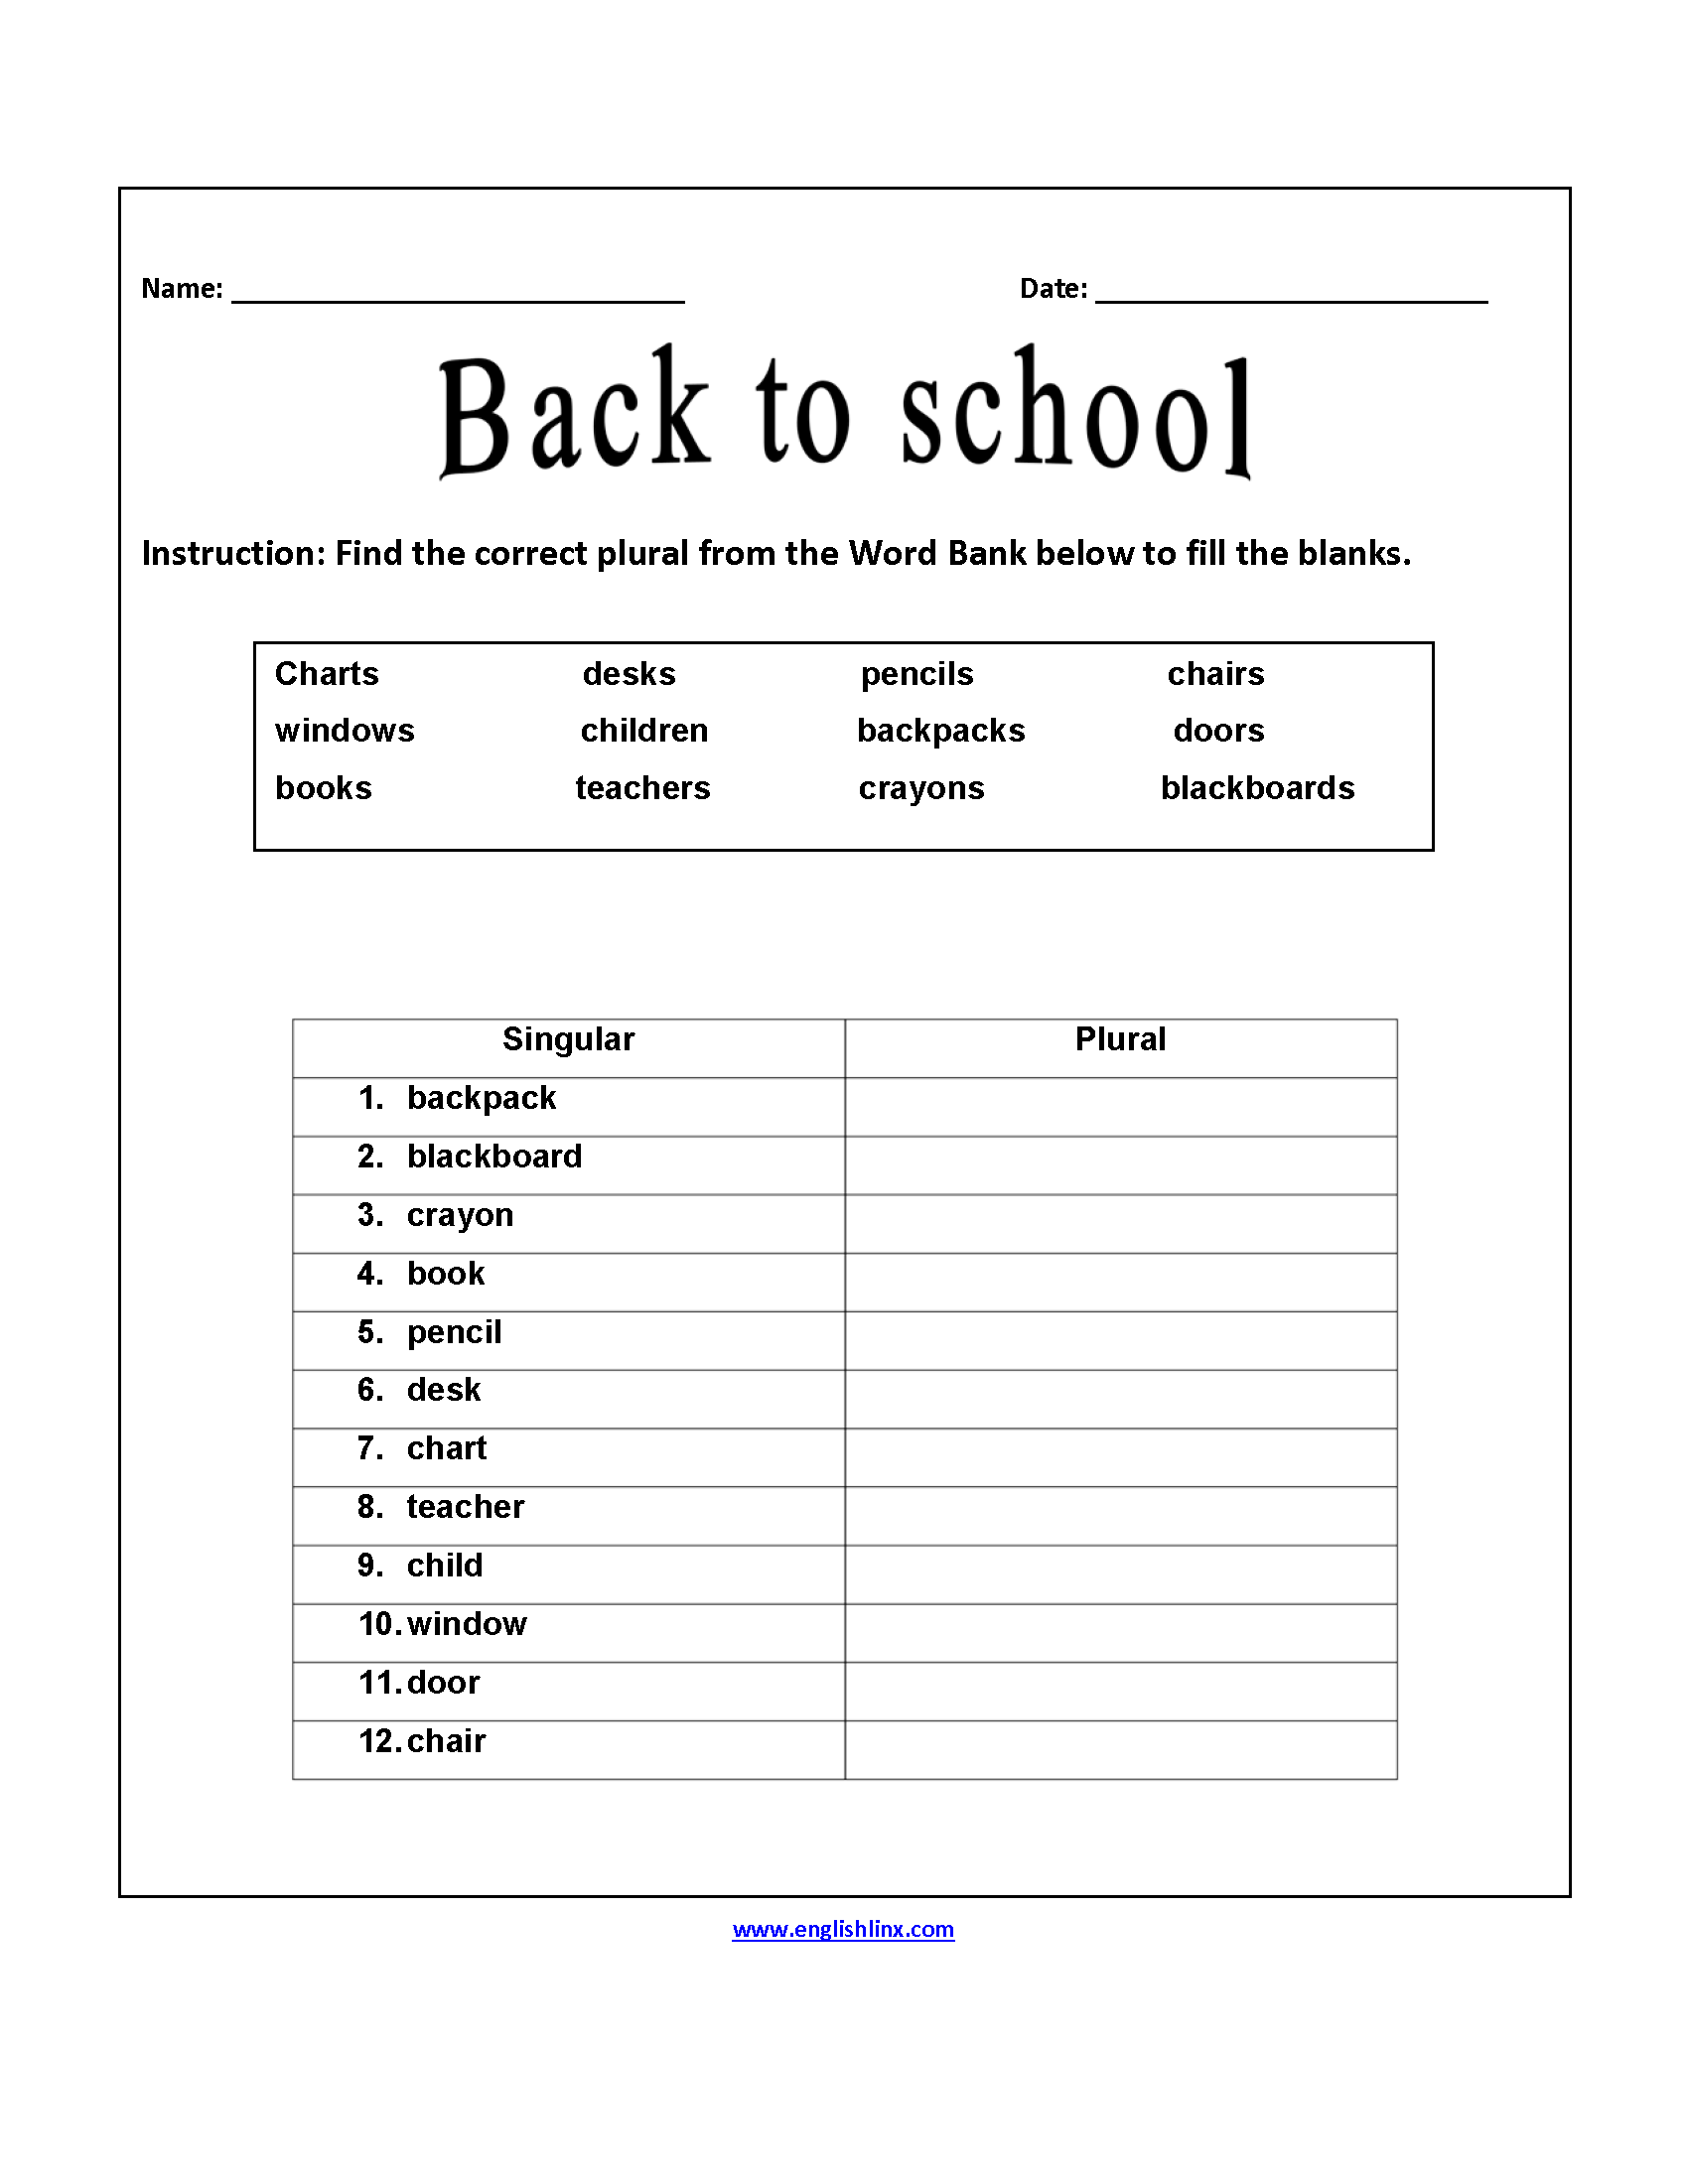 Worksheets School Worksheets englishlinx com back to school worksheets correct plurals worksheets